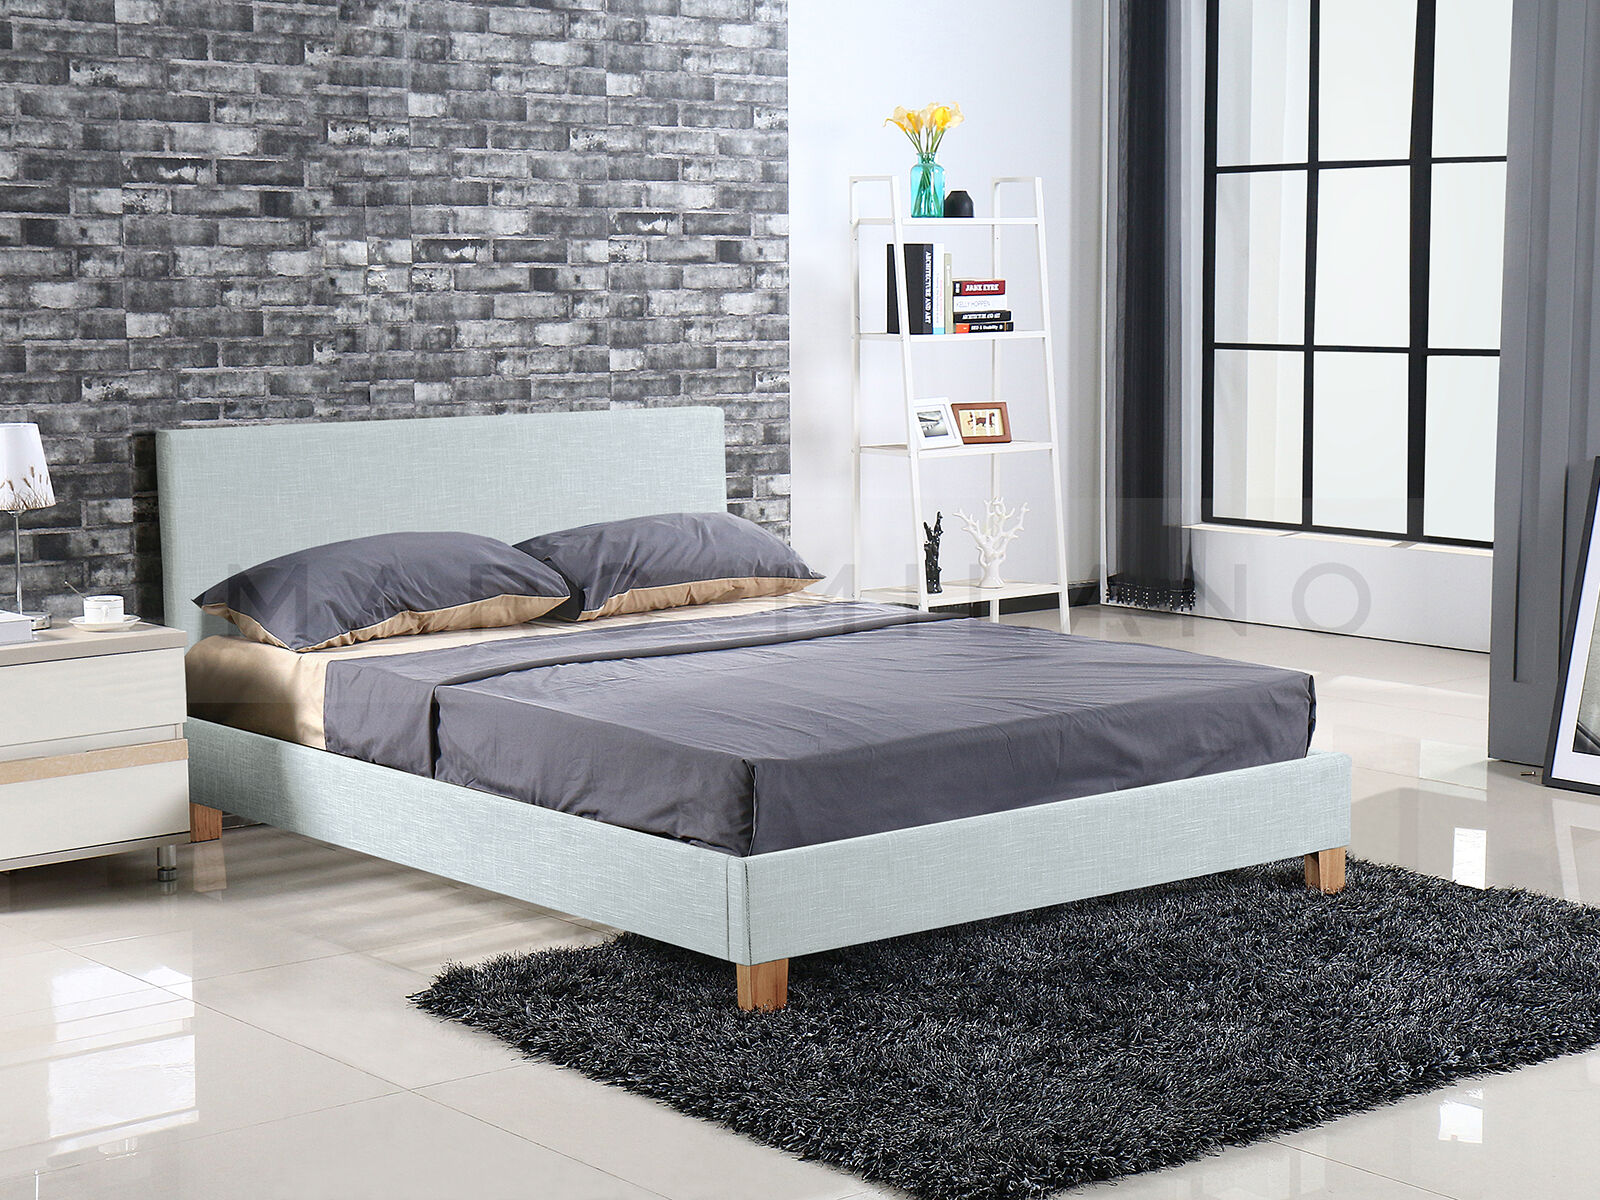 Luxury Pu Leather Queen Size Bed Frame White